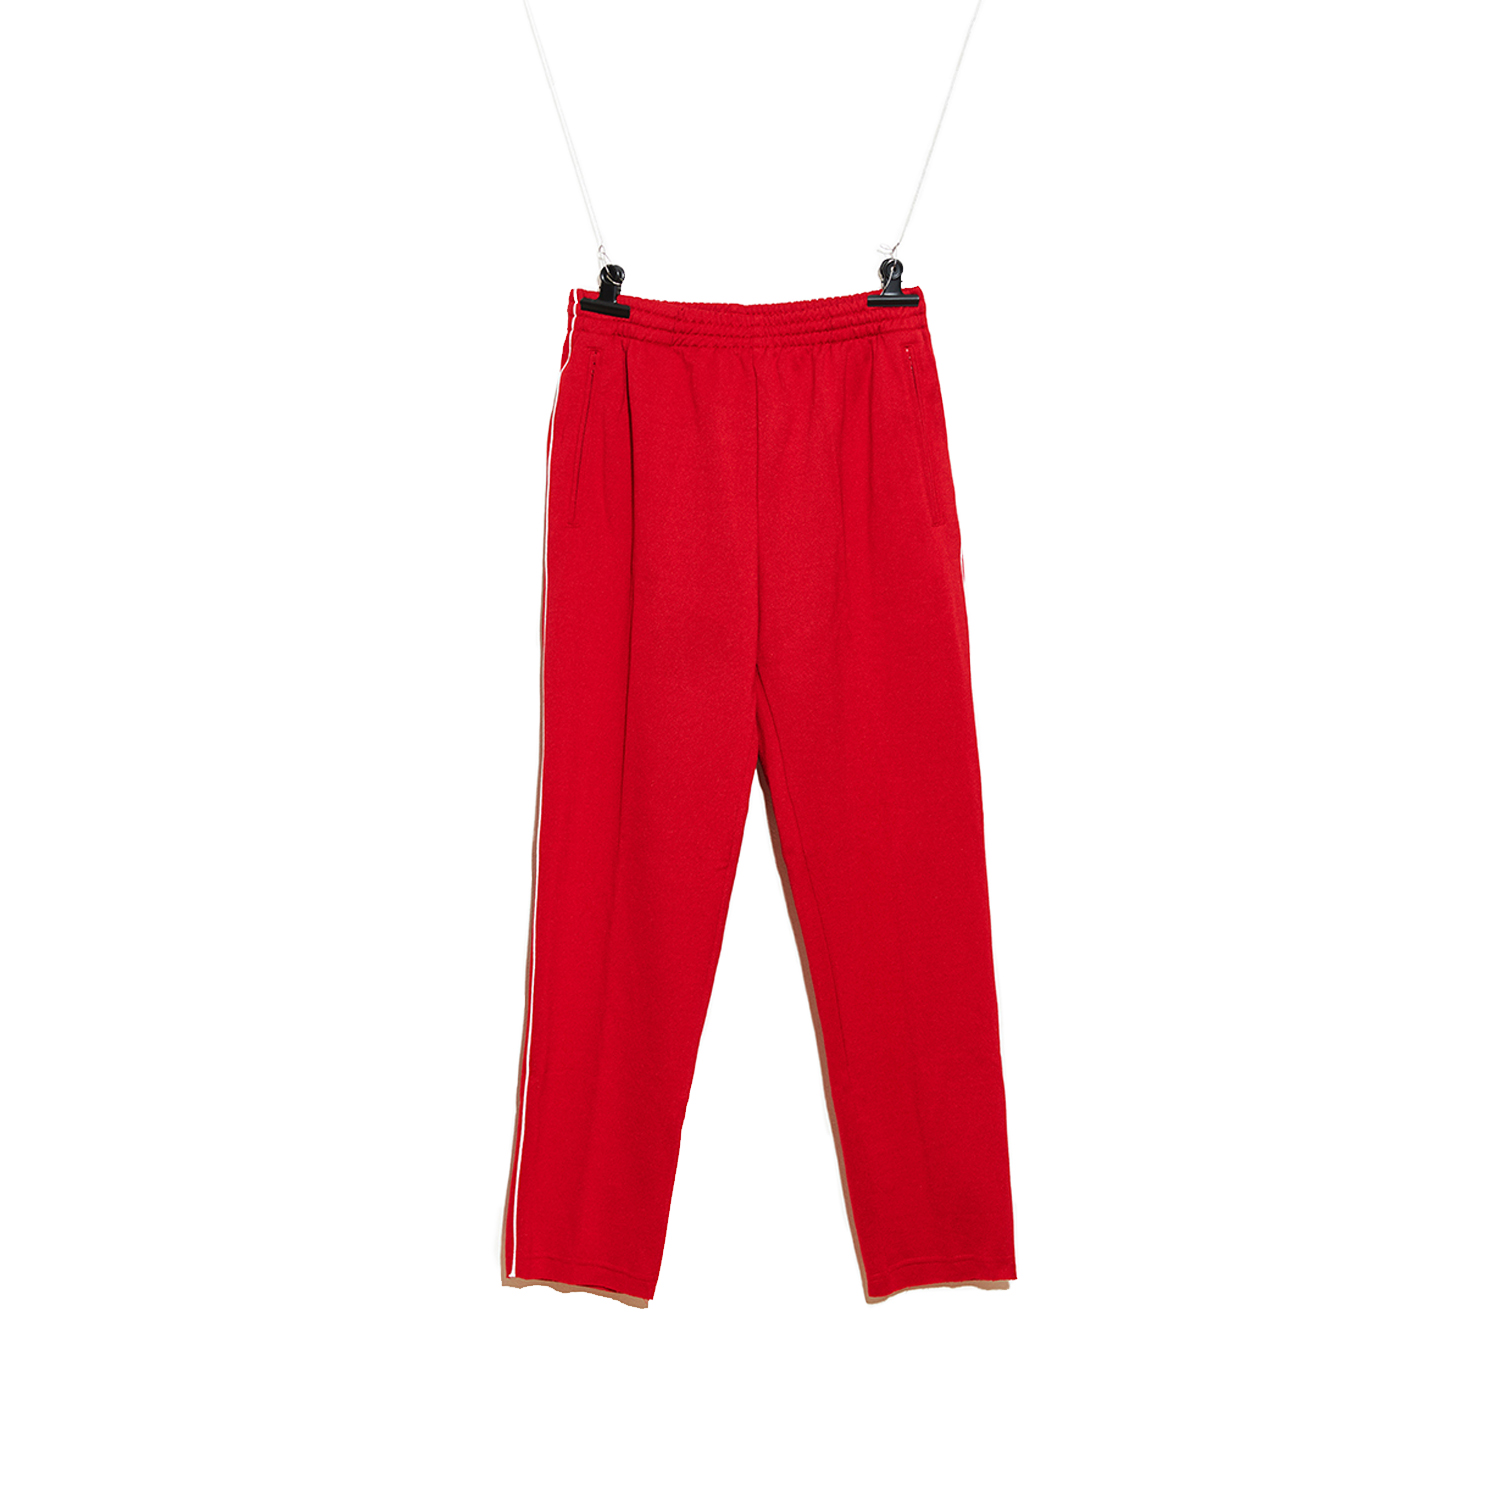 PMO JOGGER PANTS #1 RED